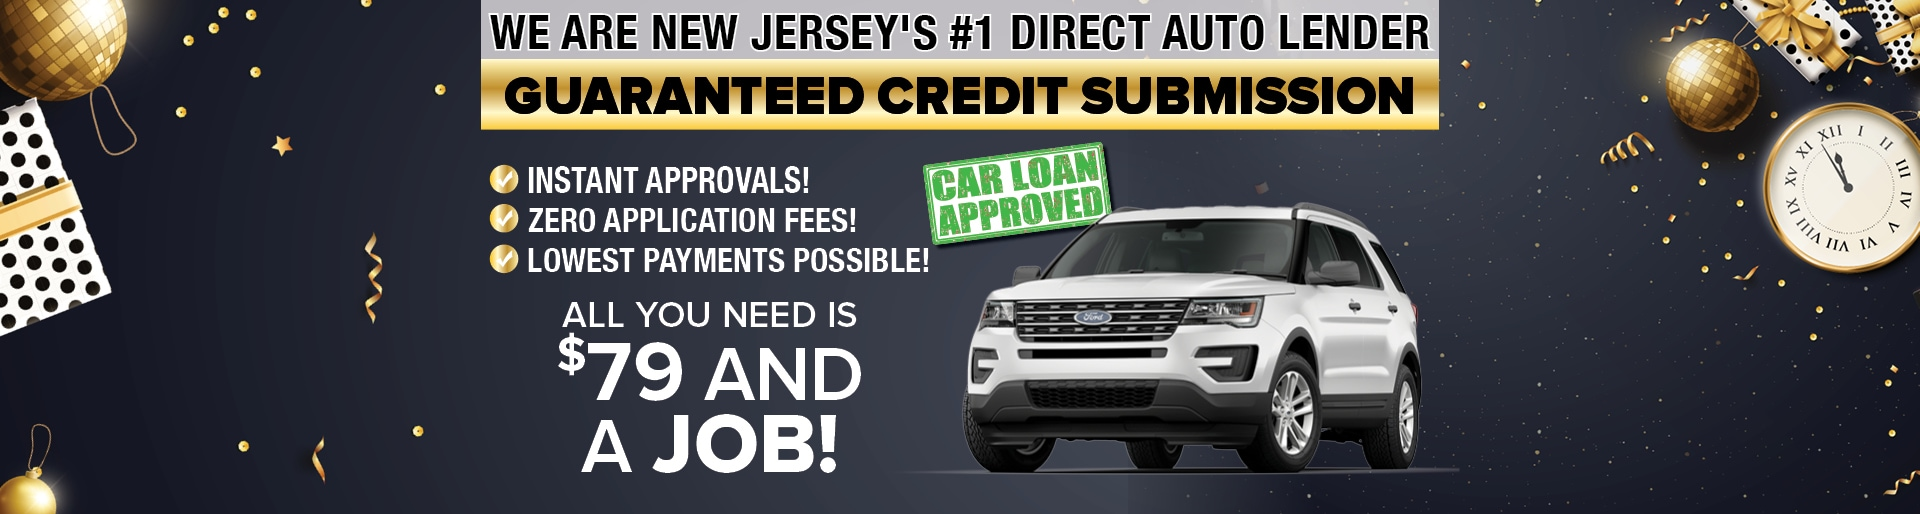 Maplecrest Ford Lincoln Ford Lincoln Dealership In Vauxhall Nj